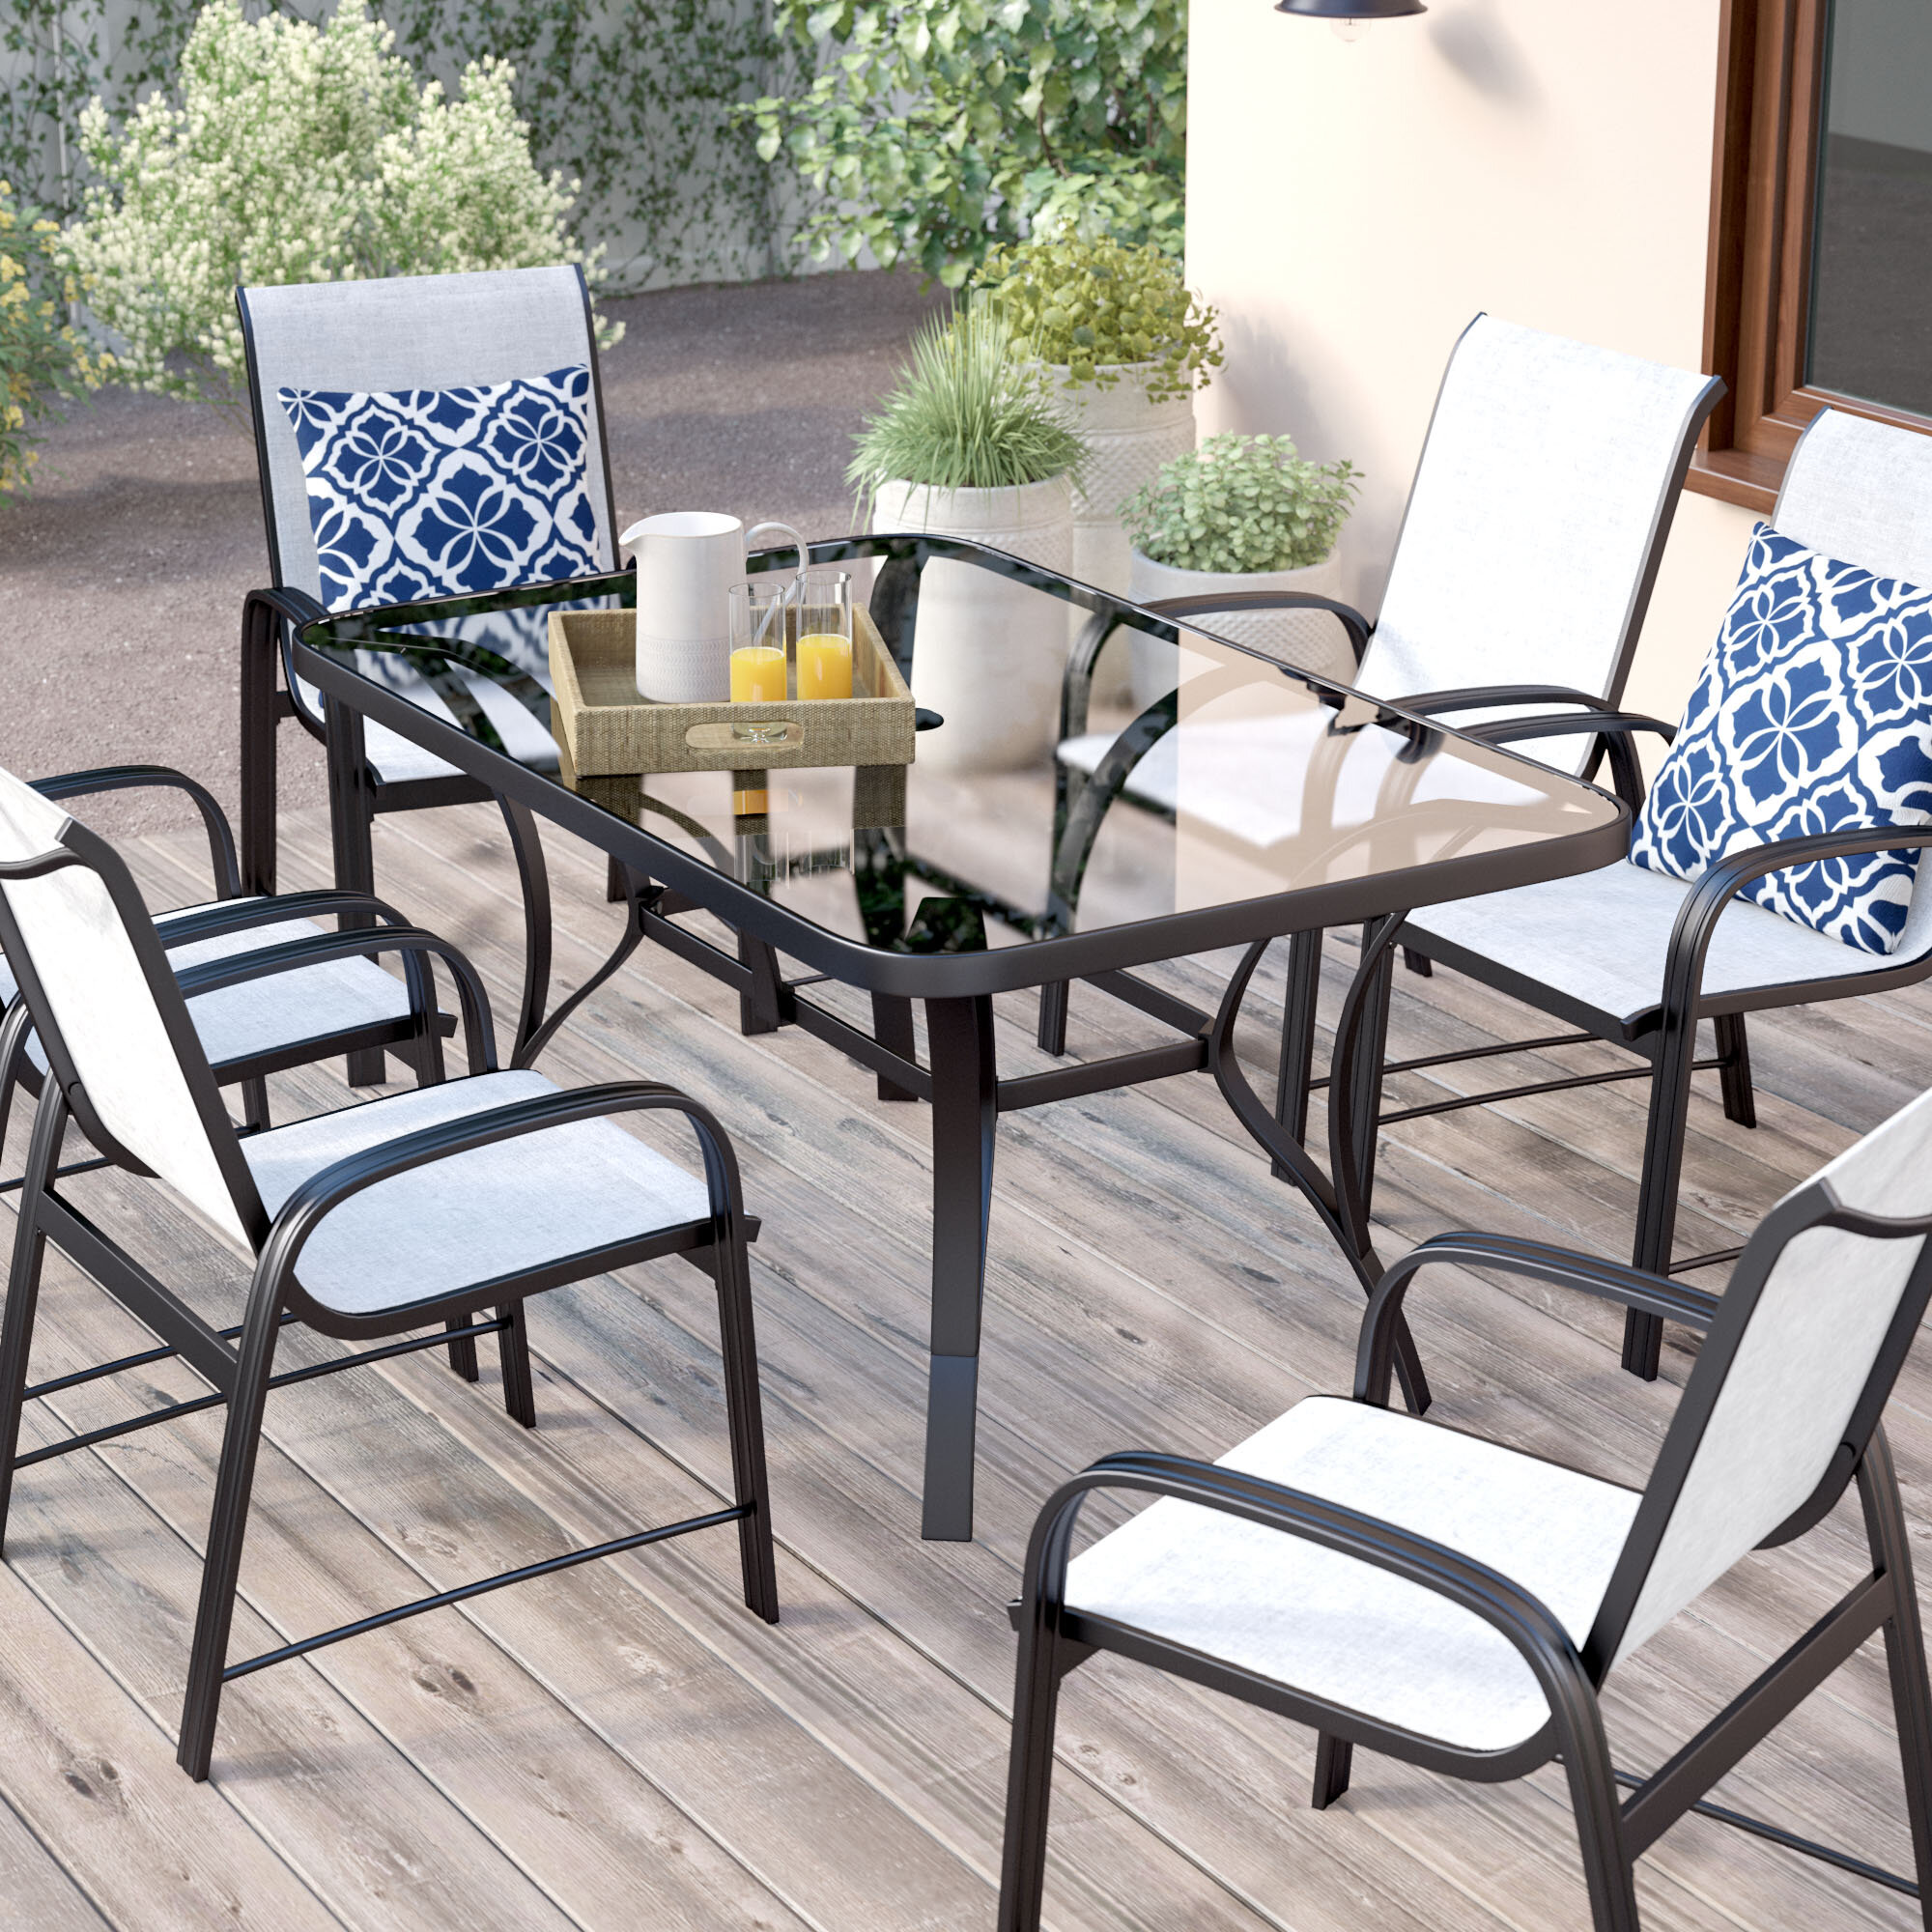 patio set frame traditions dining sets lowes with metal at com for pl display outdoors piece reviews shop natural product furniture bronze